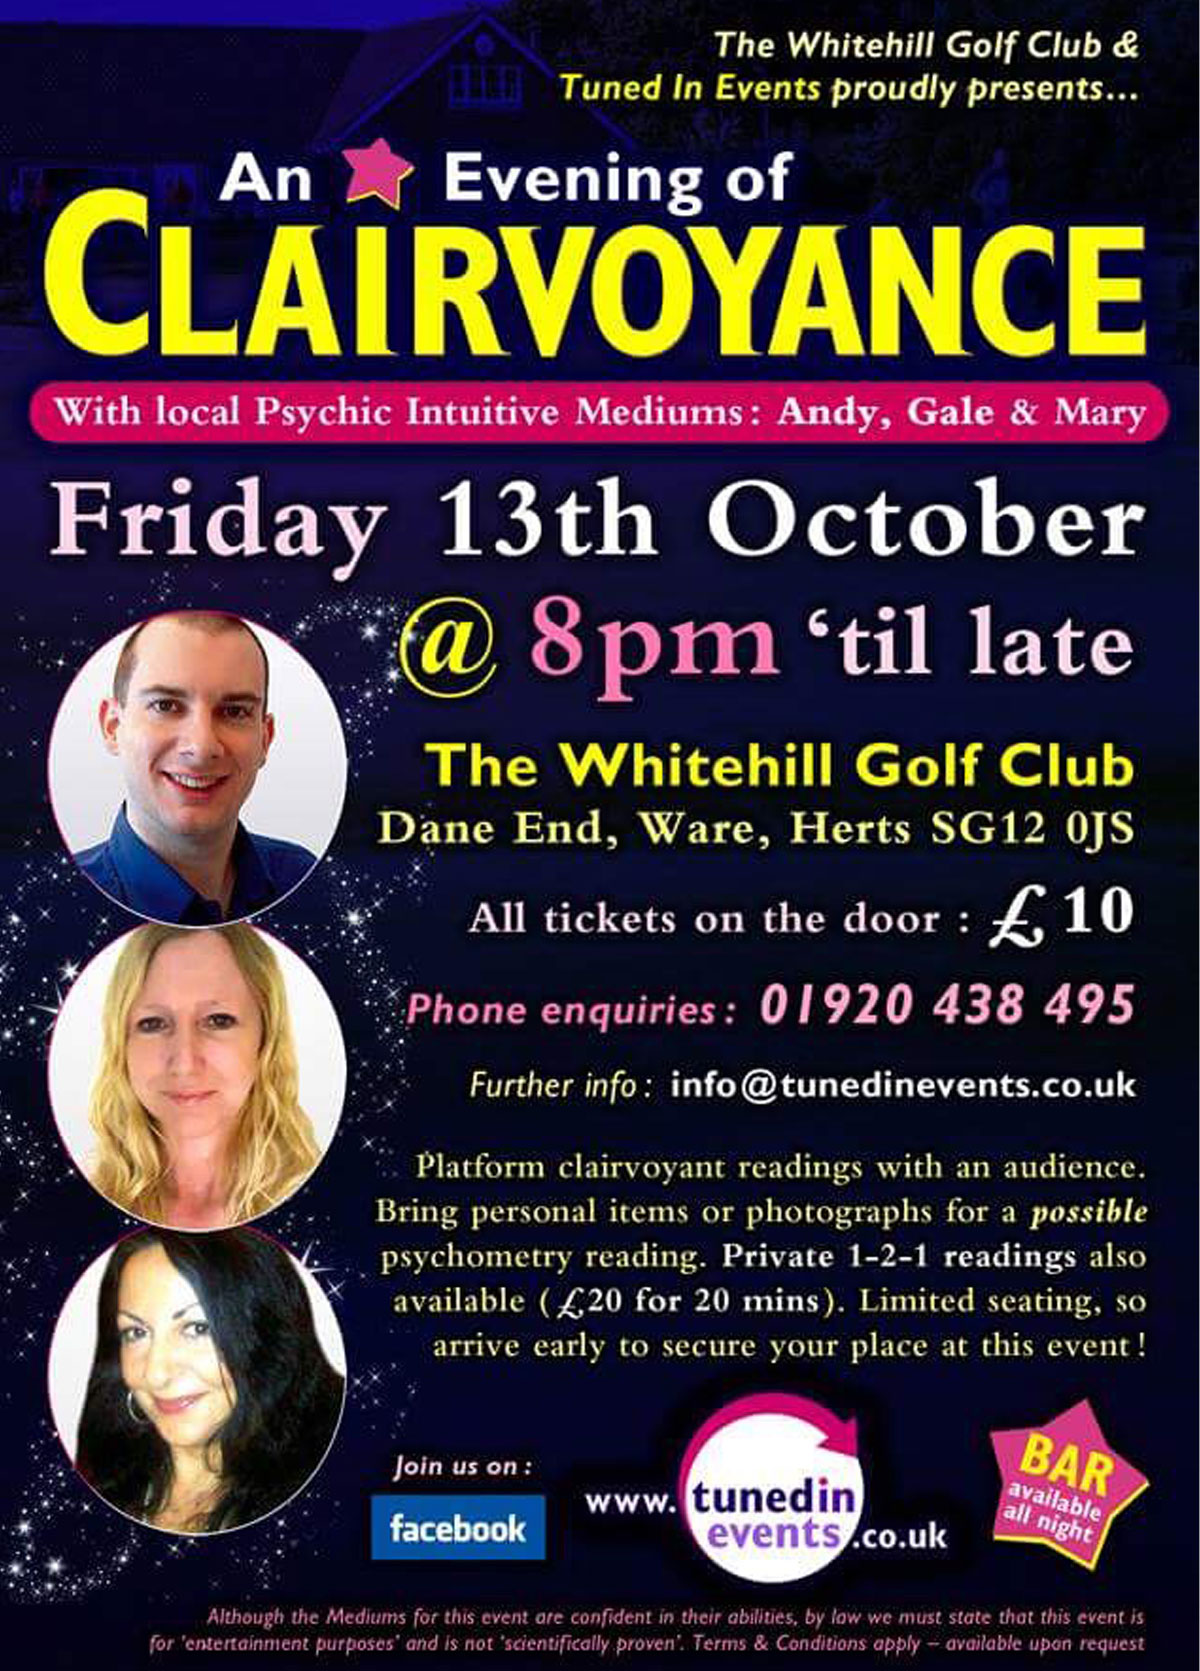 A evening of clairvoyance